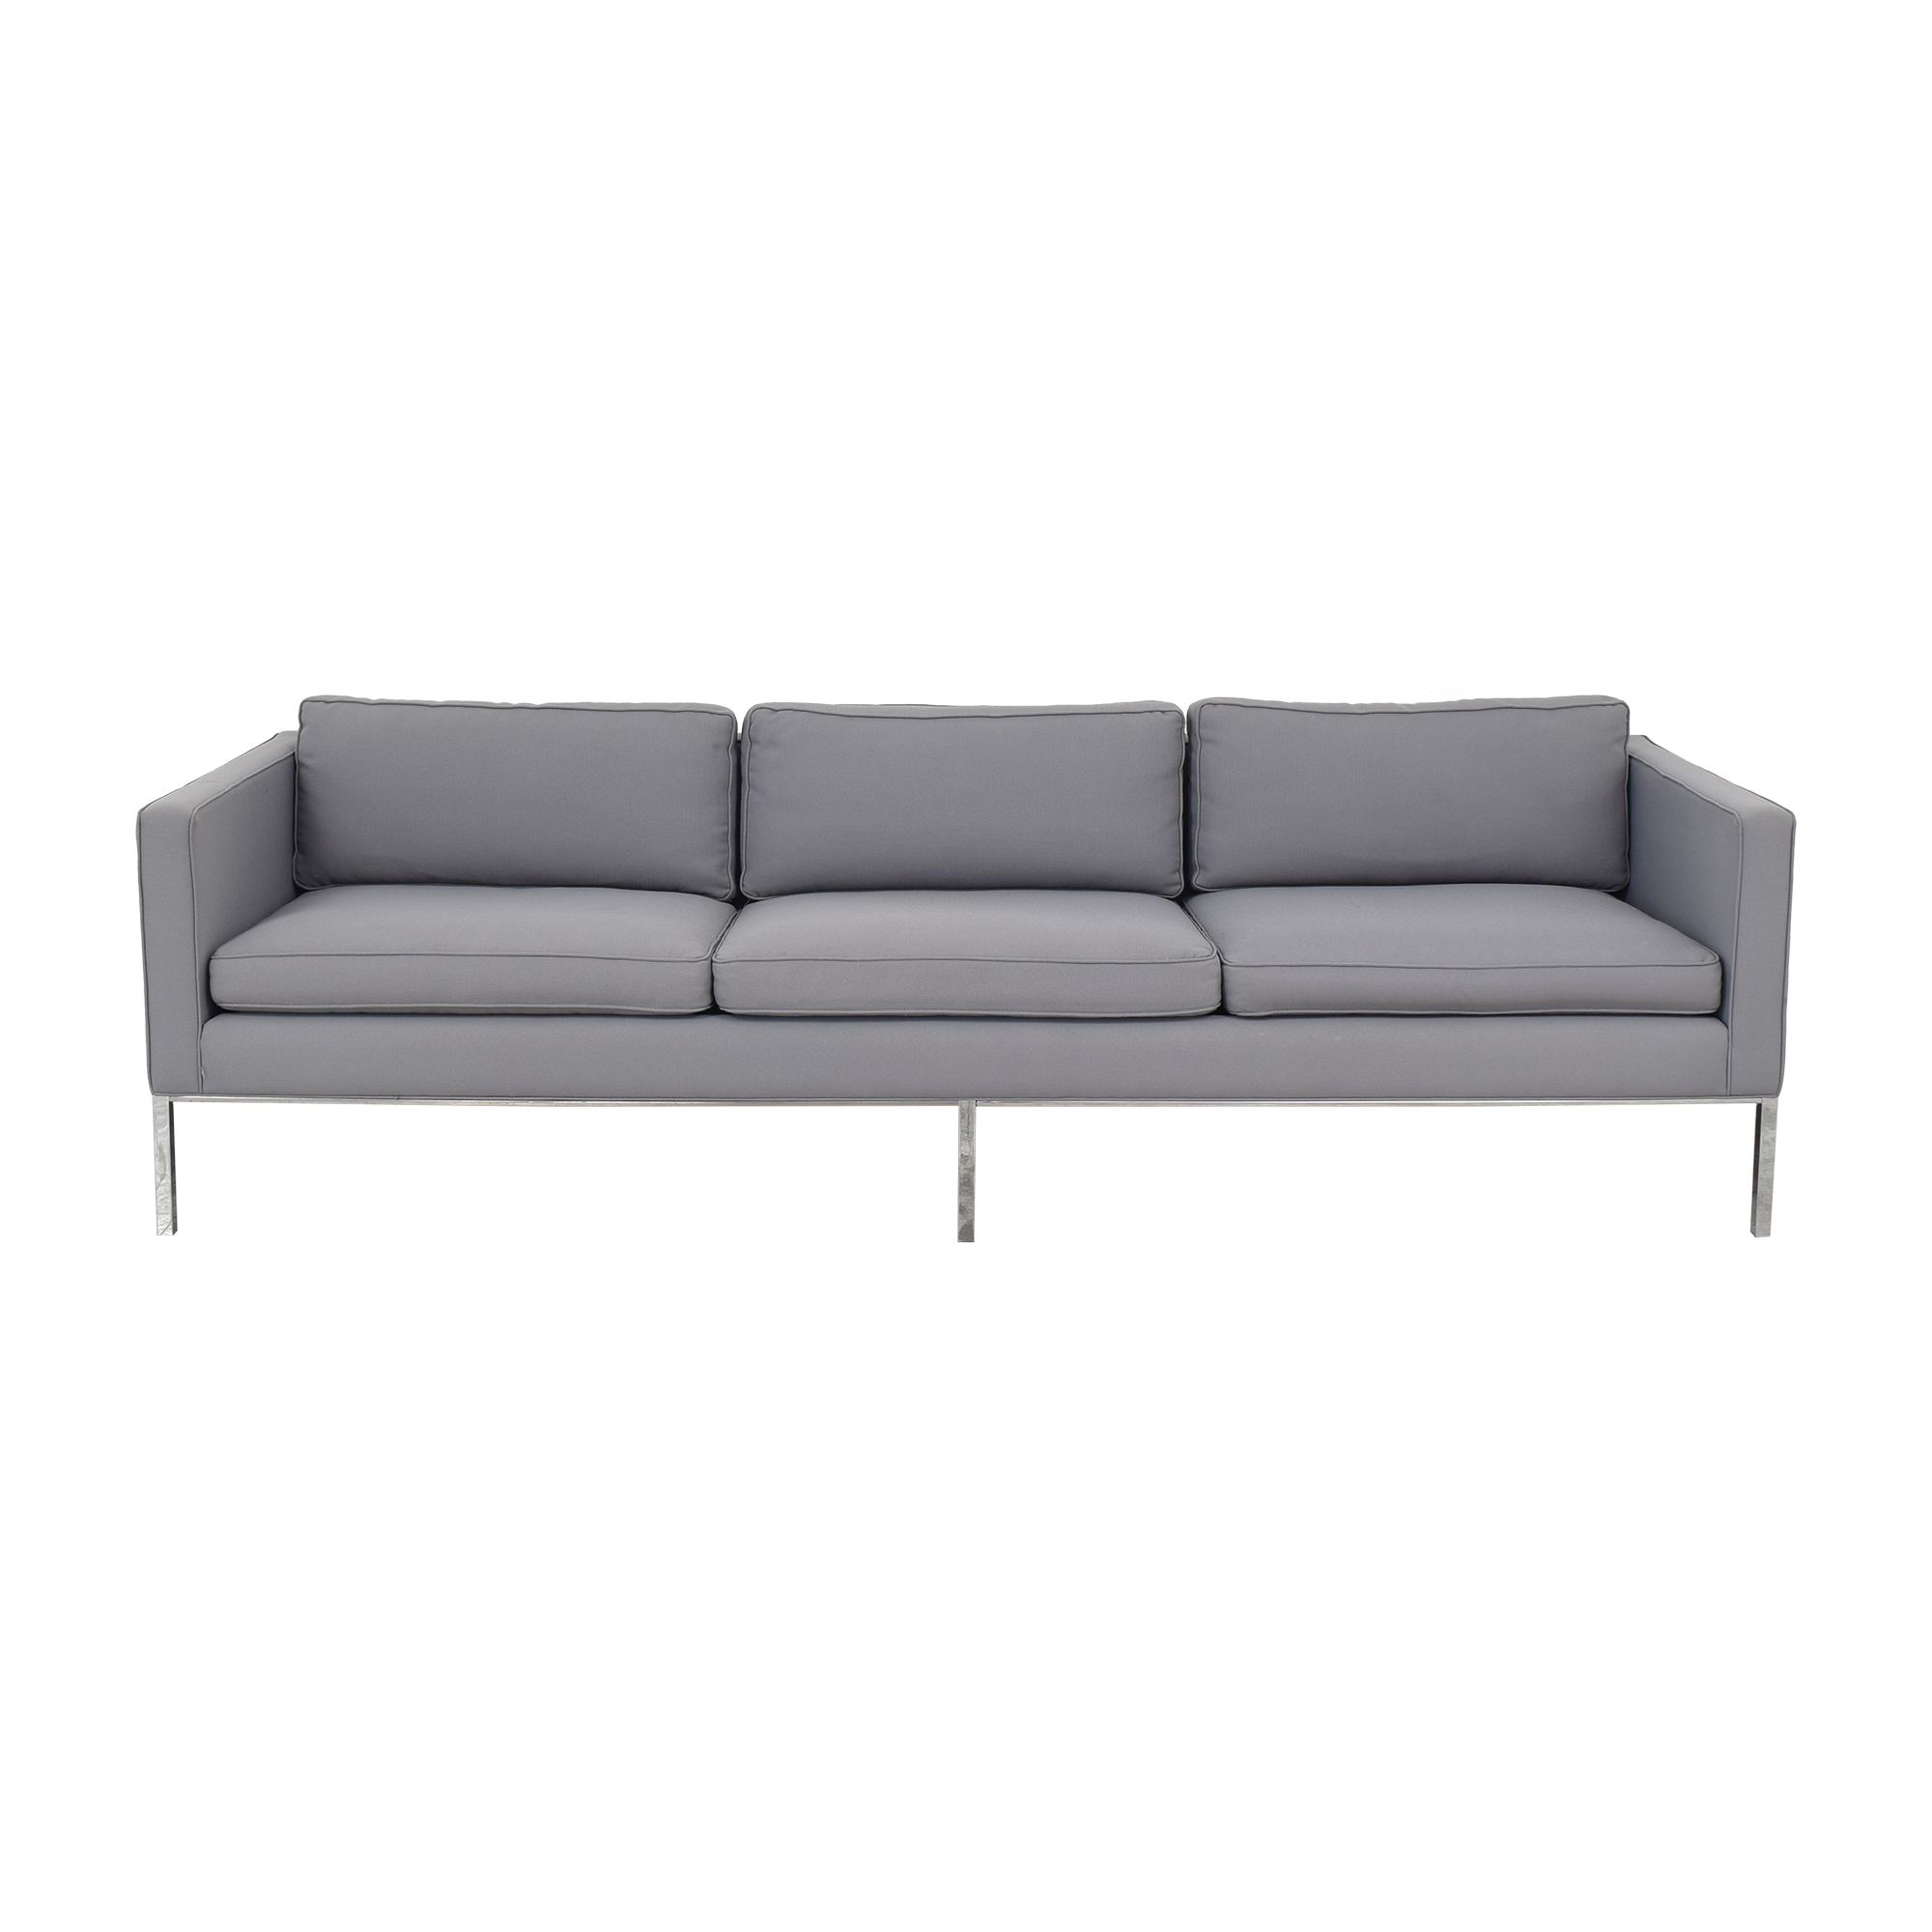 Artifort Artifort 905 3 Seater Sofa with 905 Ottoman ma